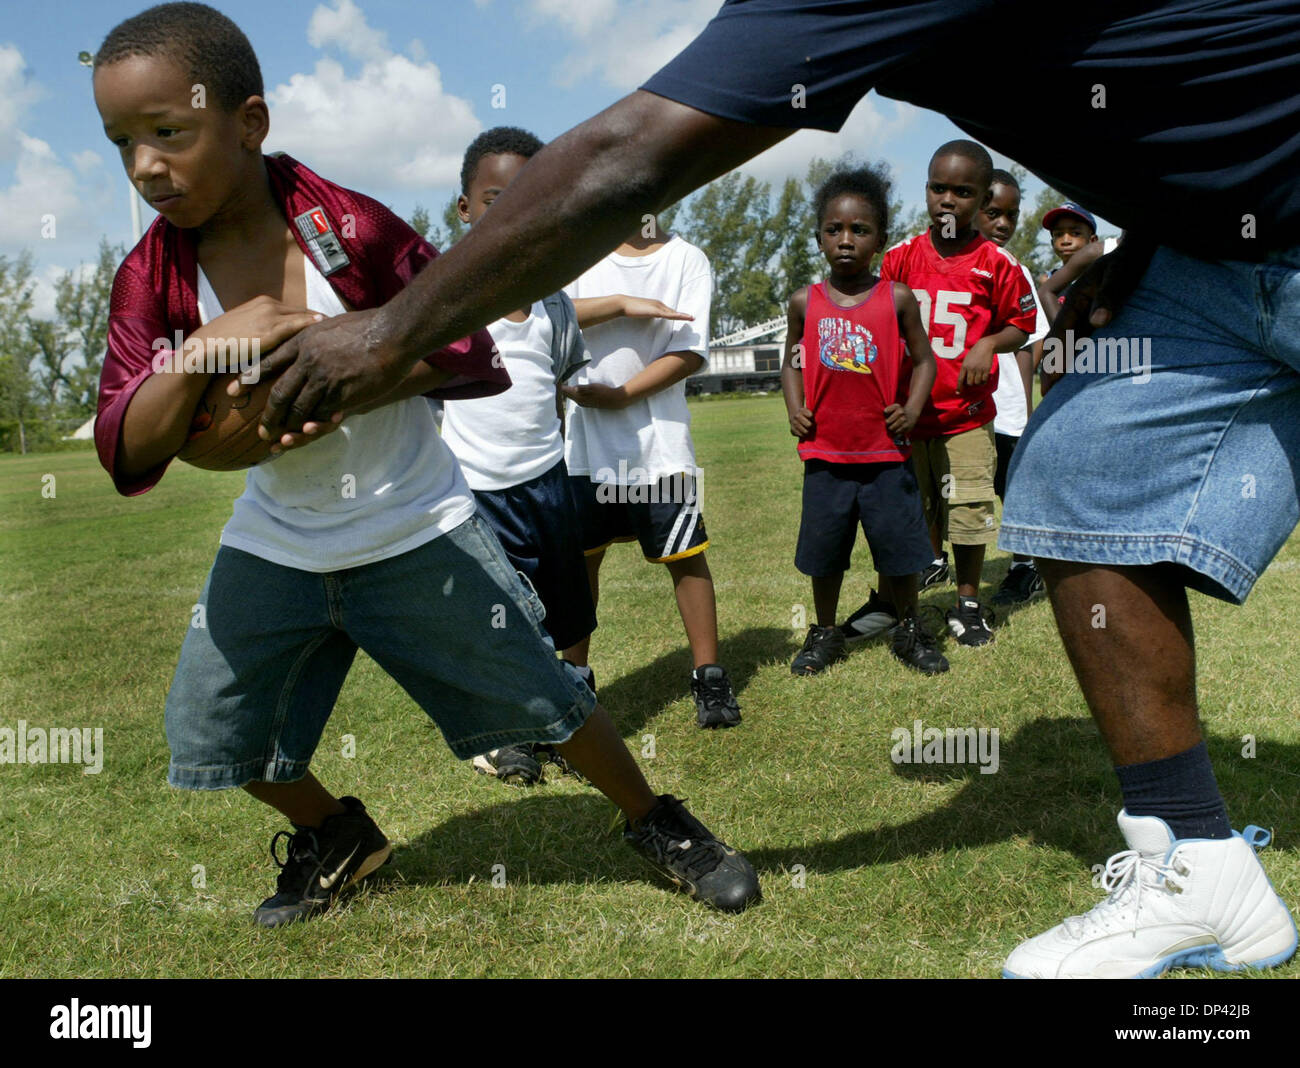 Jul 22, 2006; Riviera Beach, FL, USA; Six-year-old Bryan Howzell practices taking the football from Kenneth Payne during the Barrett Green Football camp at that Dan Calloway Recreational Complex. Payne is the center director of Wells Recreational center. Professional football players who worked with kids at the camp included Suncoast Alum, Barrett Green, Arizona Cardinals' Jack Bre - Stock Image